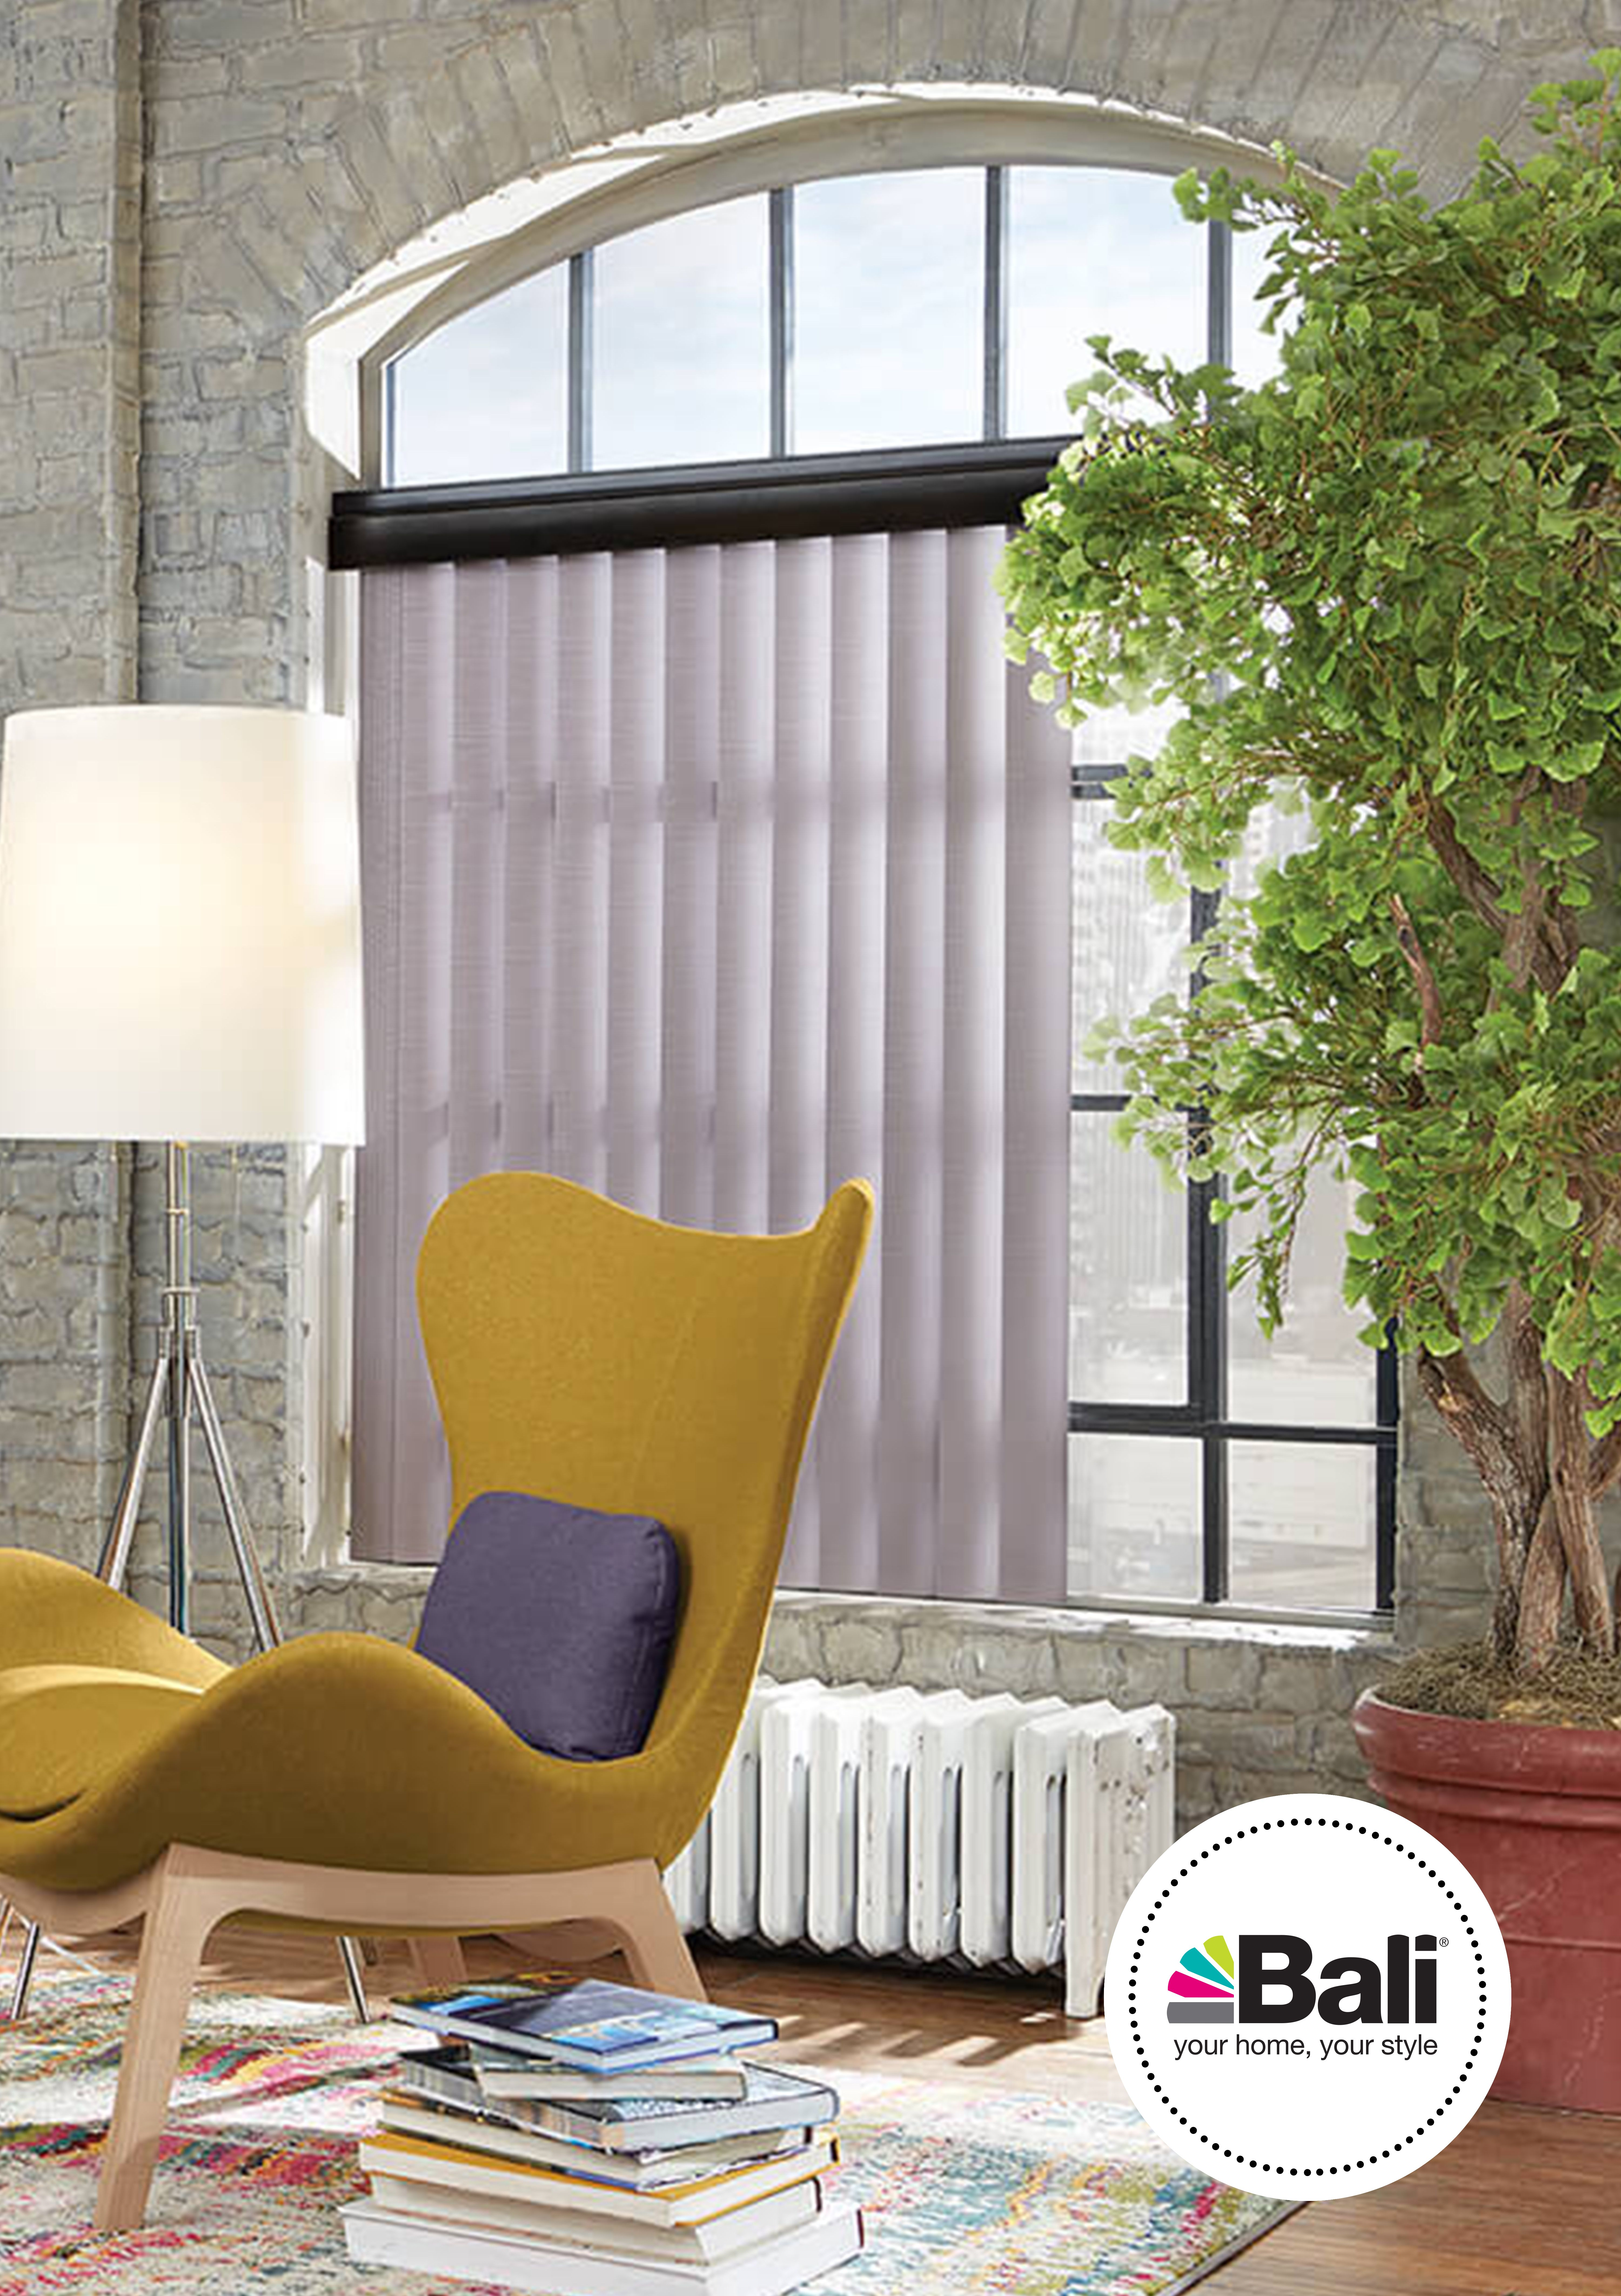 Vertical Blinds Make An Excellent Complement To Mini Blinds For A Total Room Solution That S Both Stylish Custom Vertical Blinds Vertical Blinds Shades Blinds